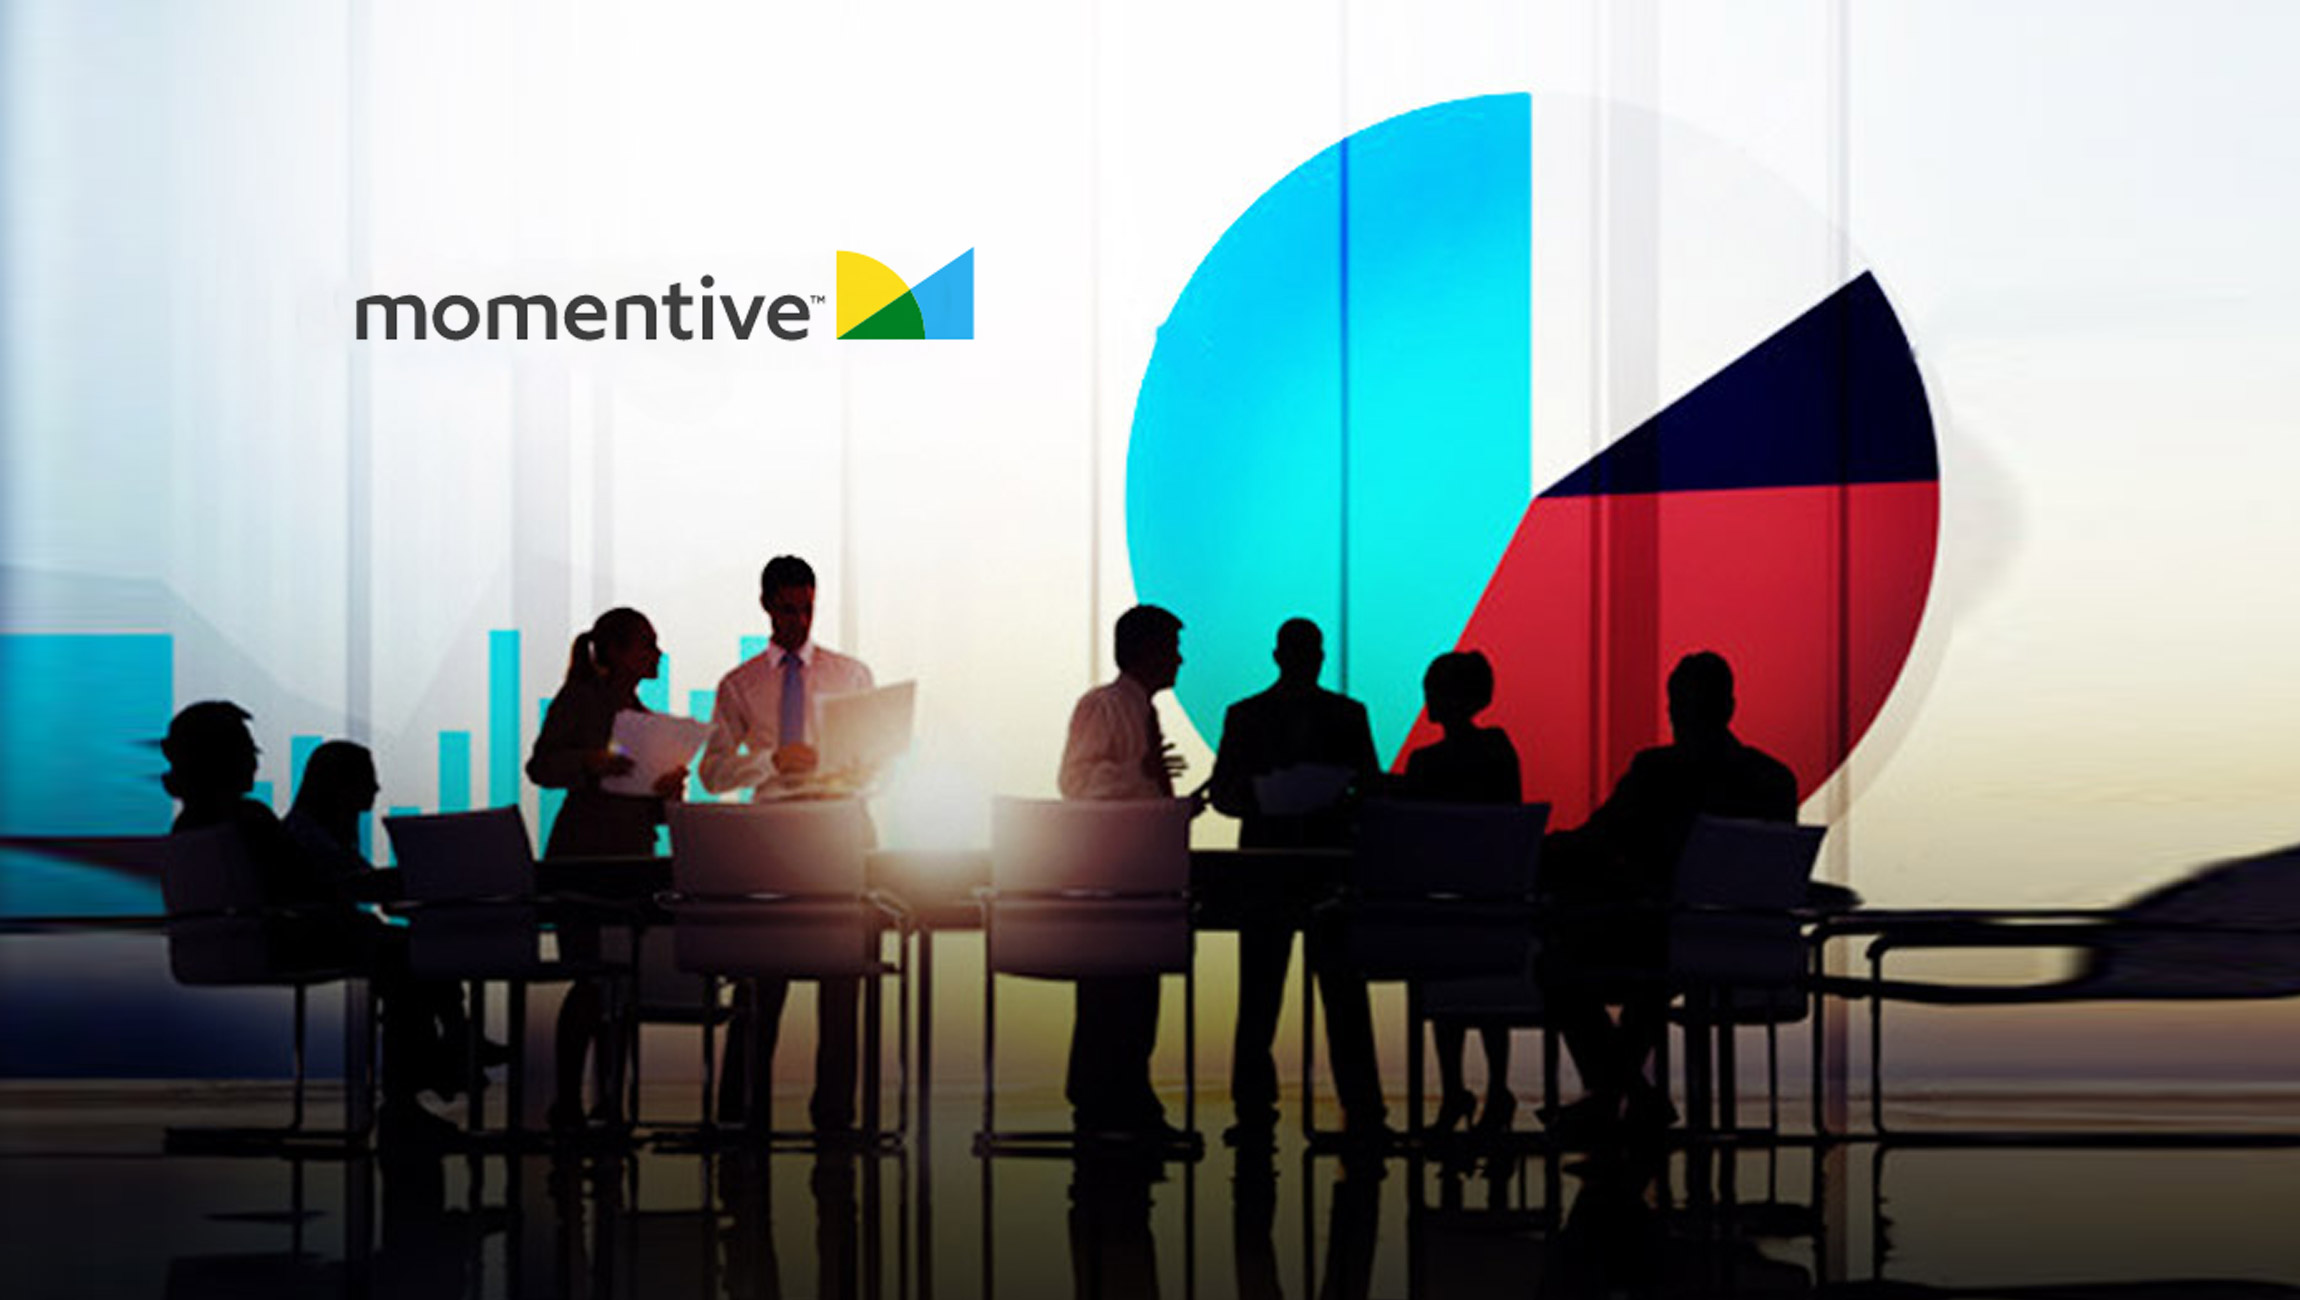 Momentive Announces New AI-Powered Market Research Solutions That Improve Audience Targeting With Advanced Analysis